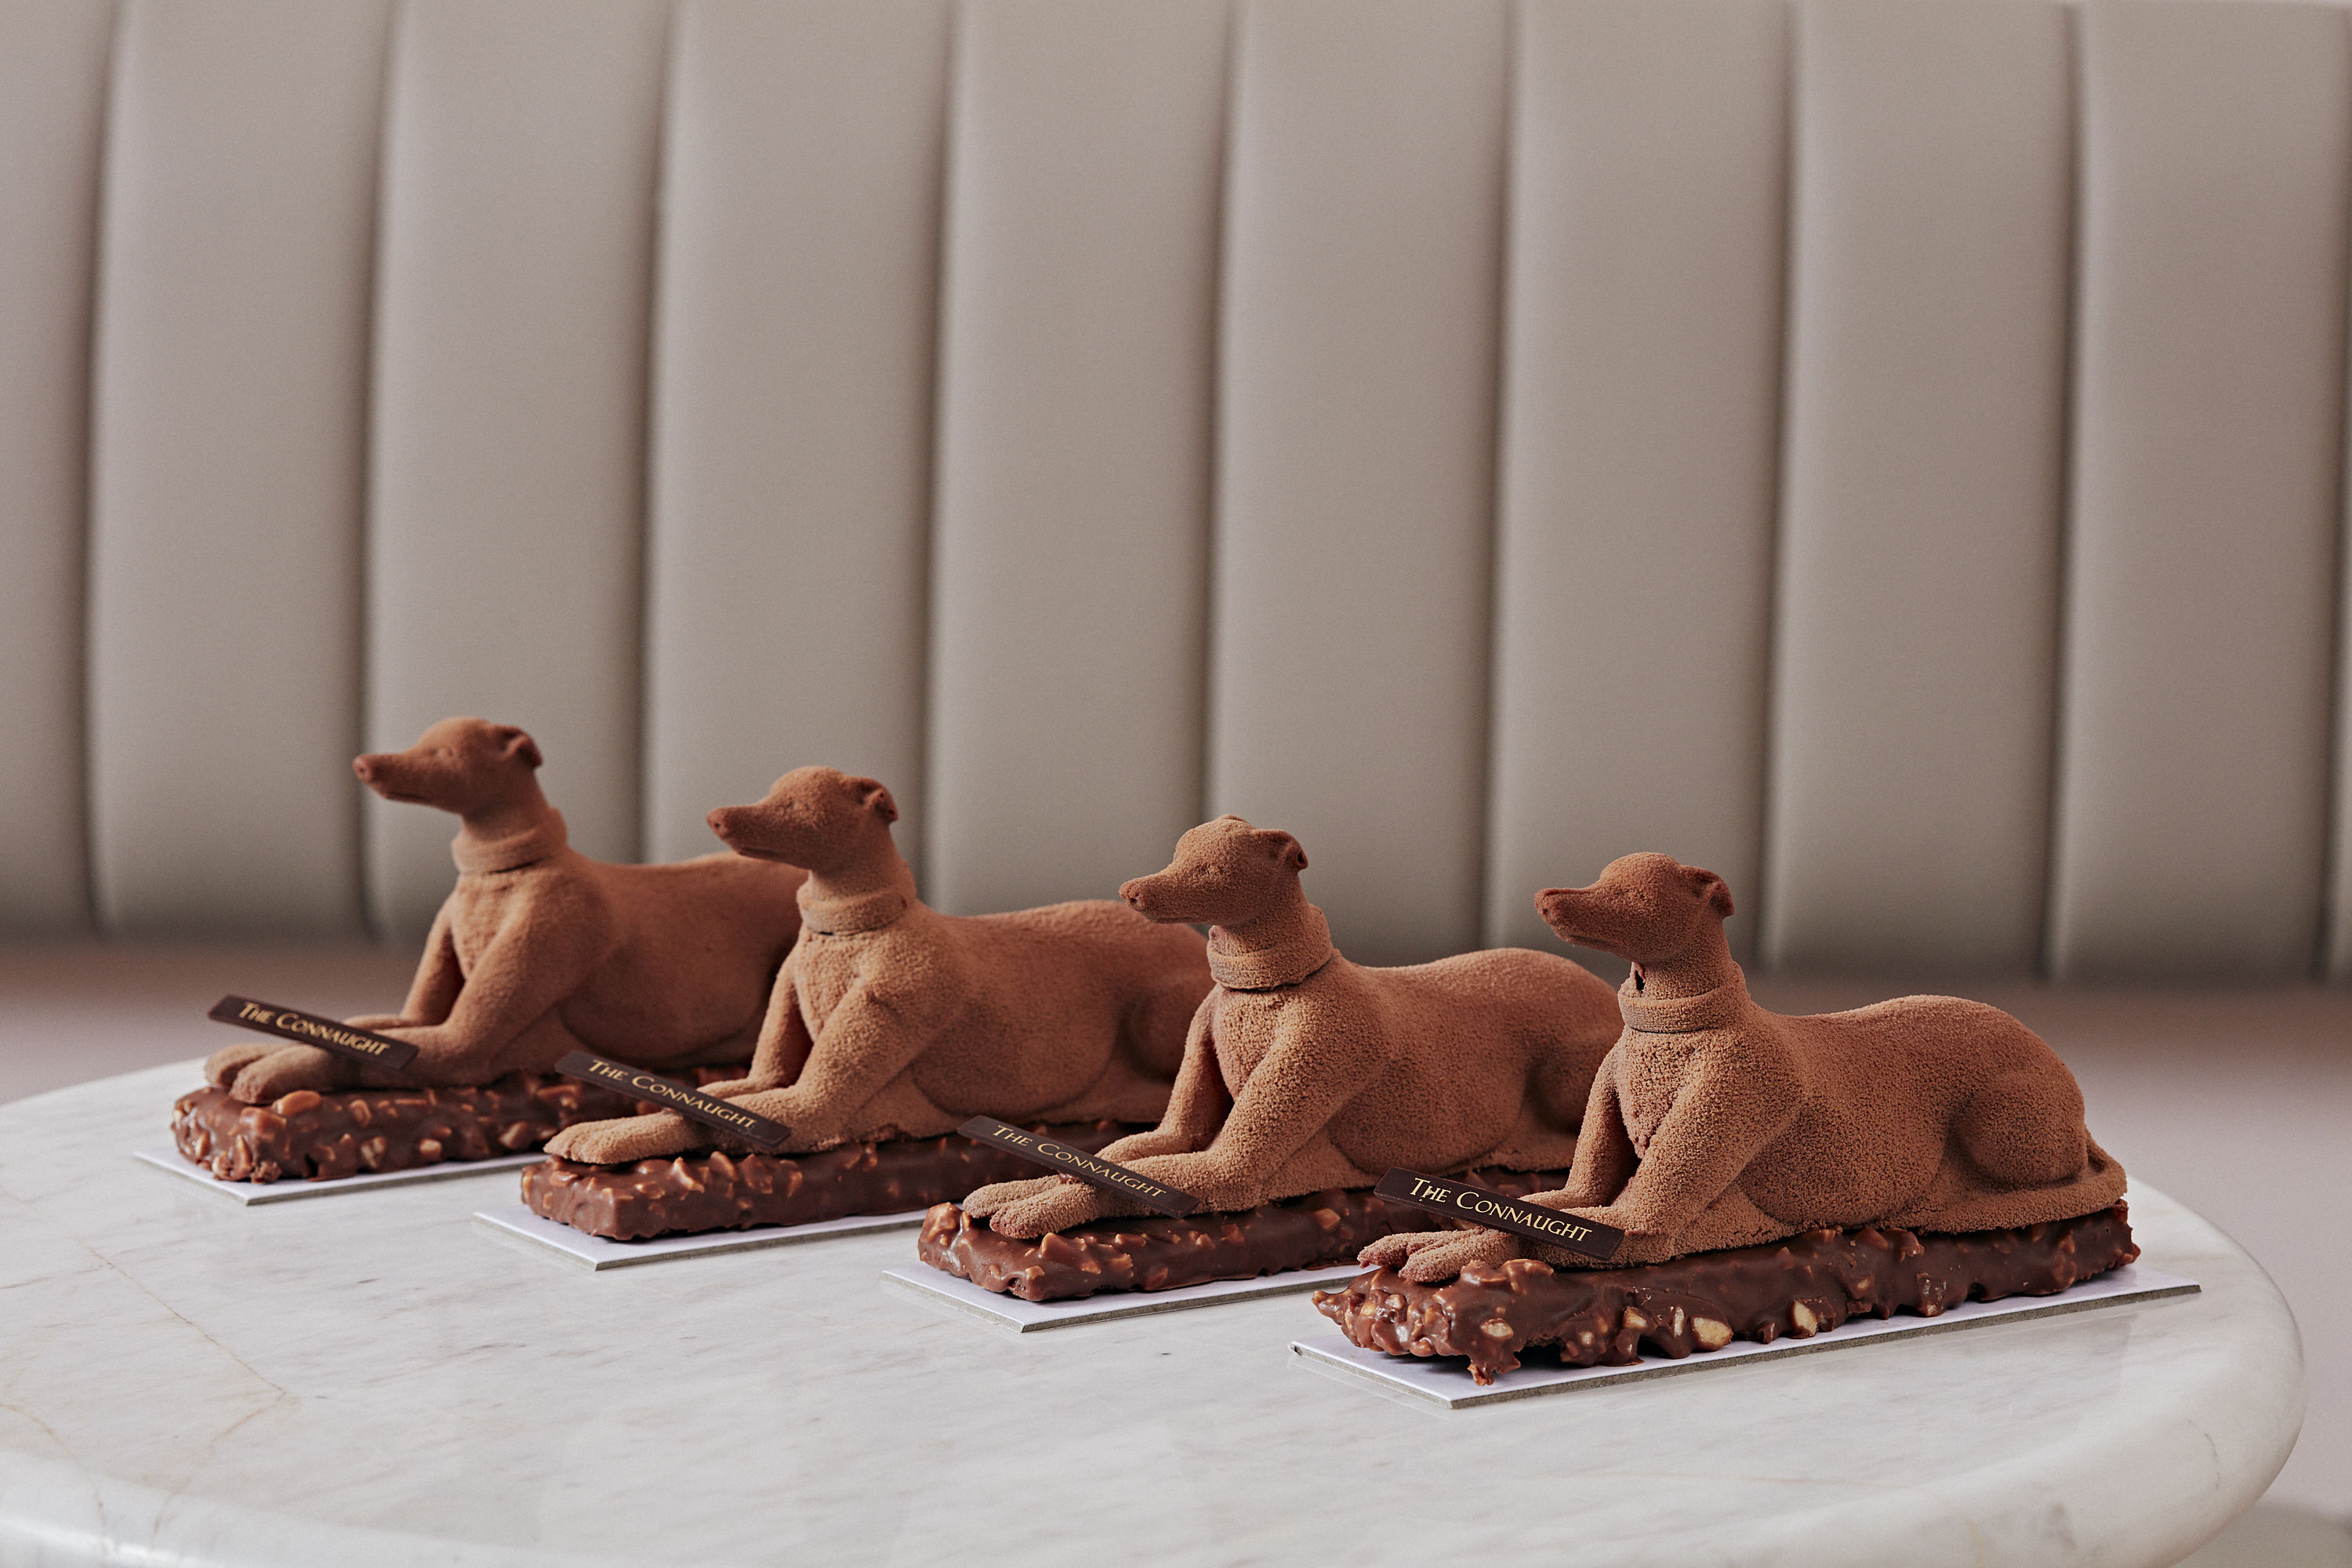 Woof down a chocolate dog at Mayfair's newest patisserie